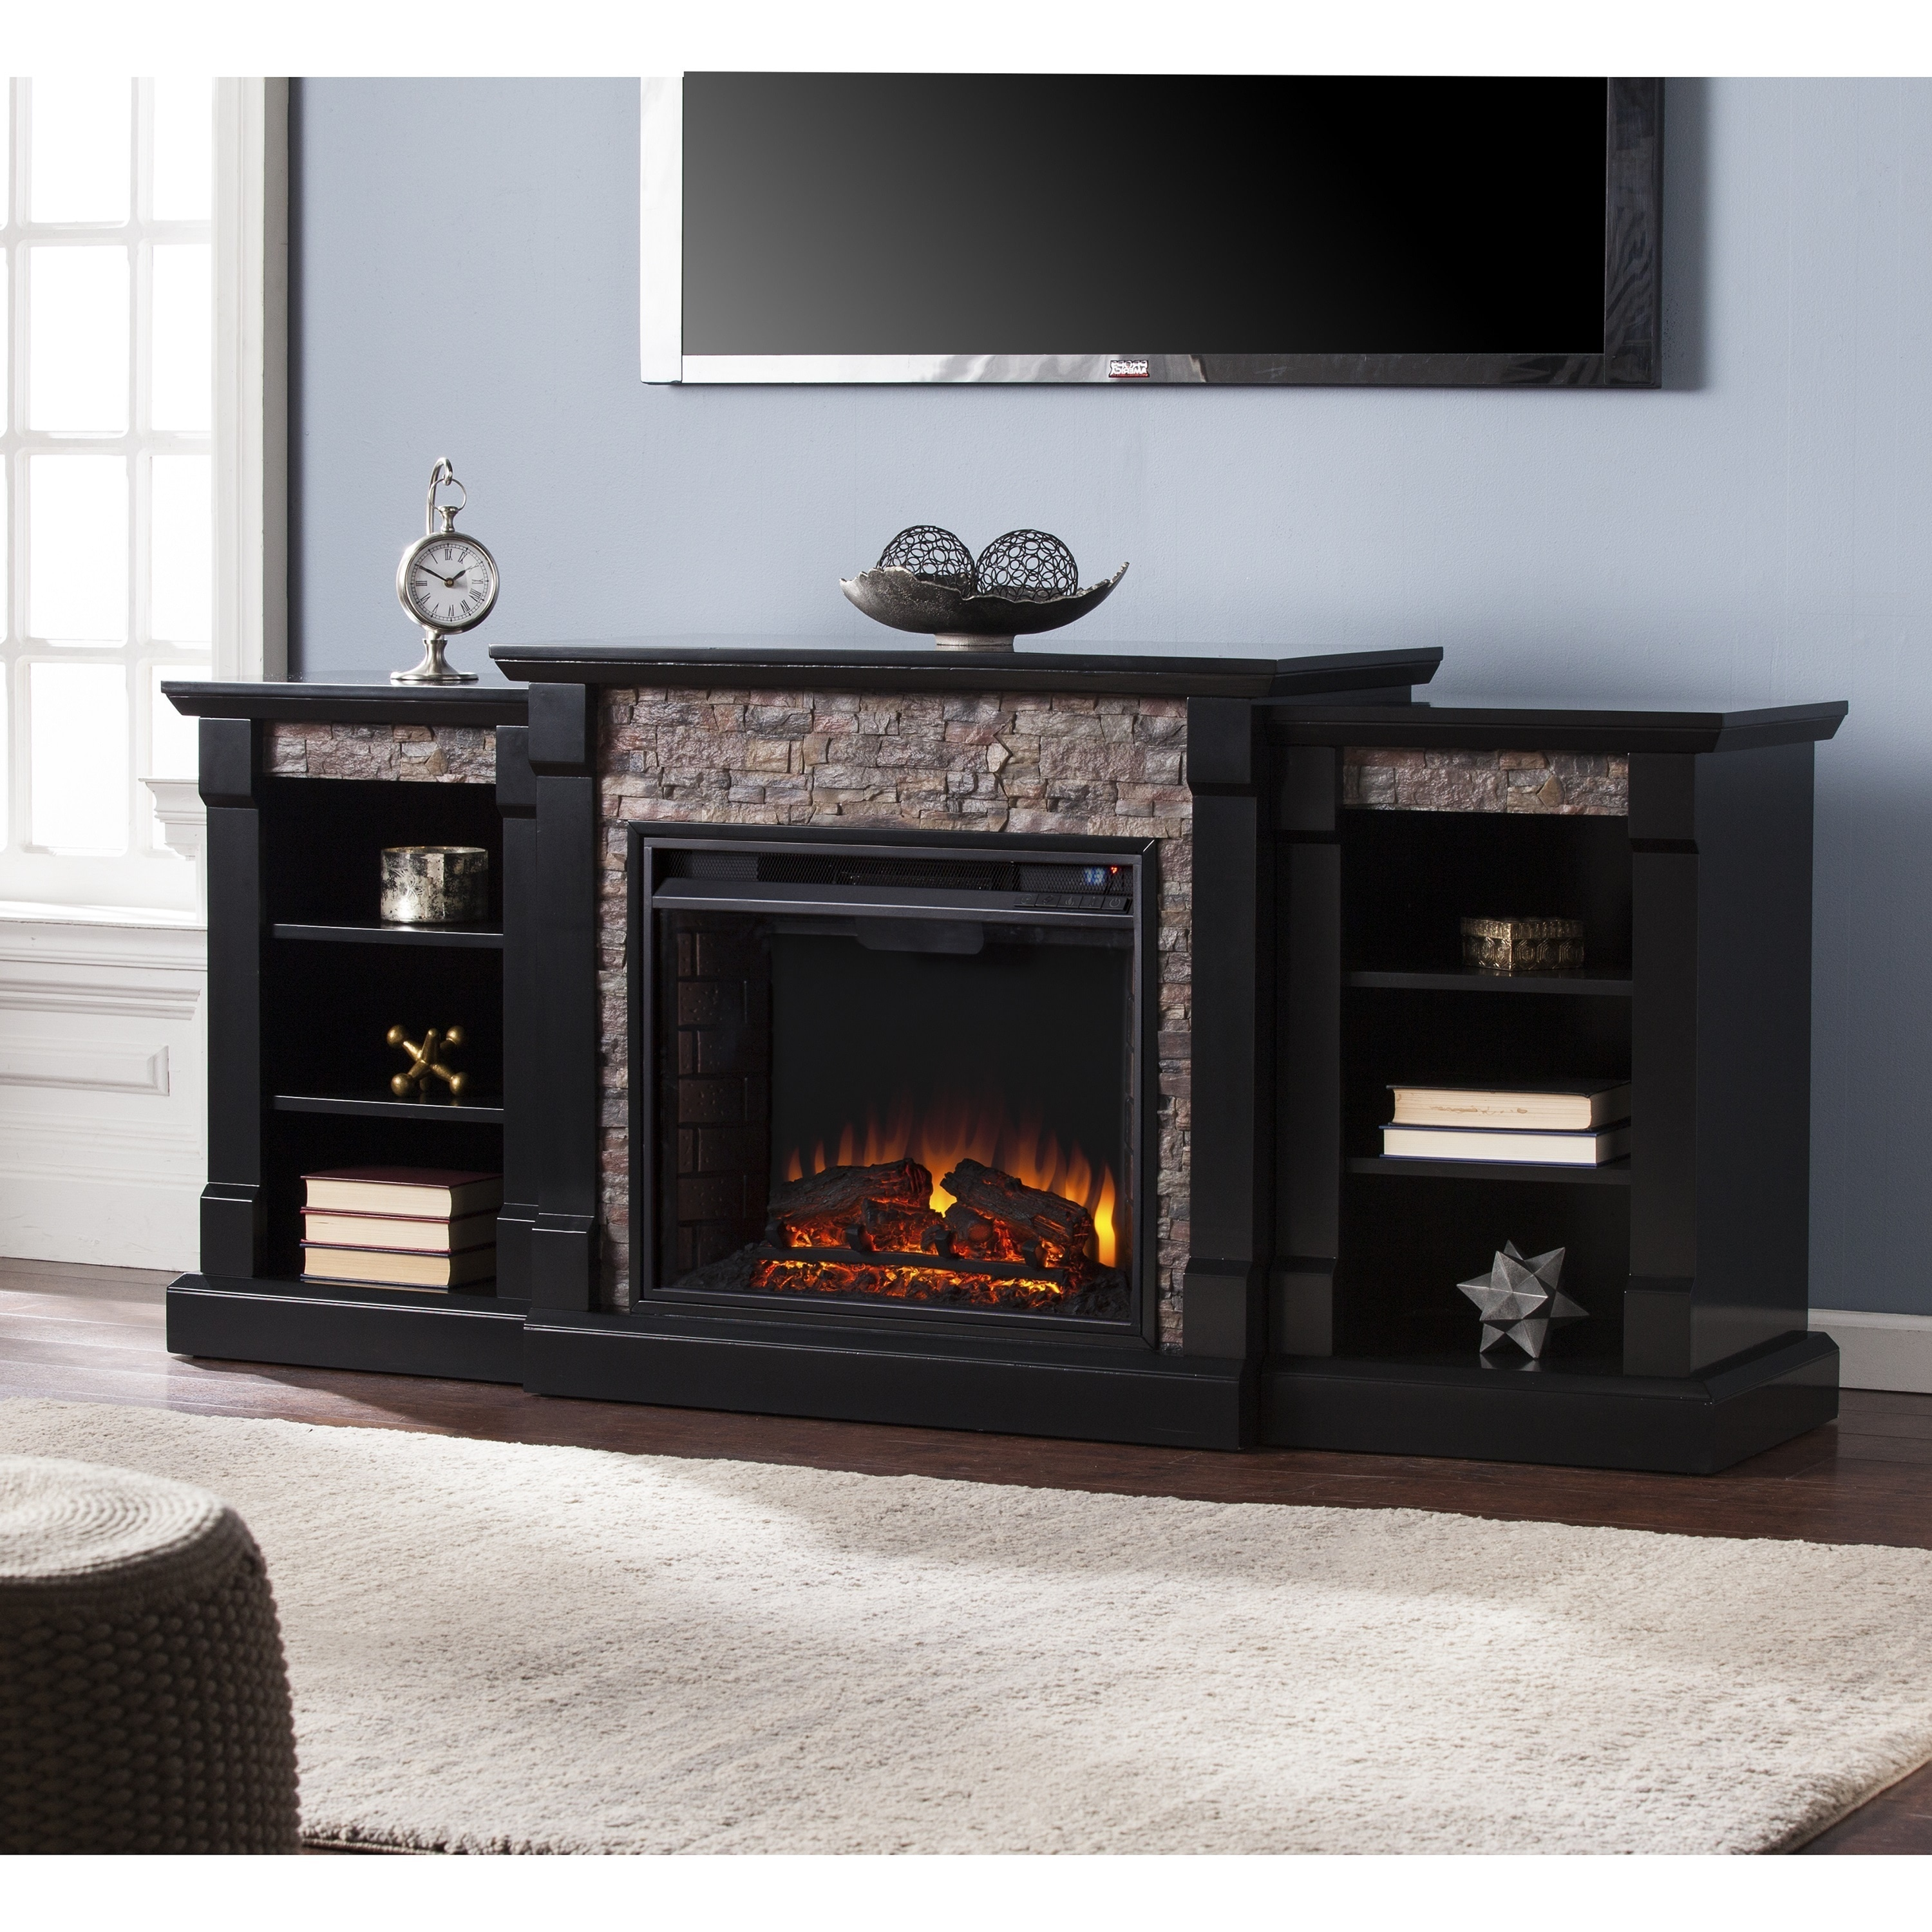 Shop Copper Grove Hay River Black Faux Stone Electric Fireplace With